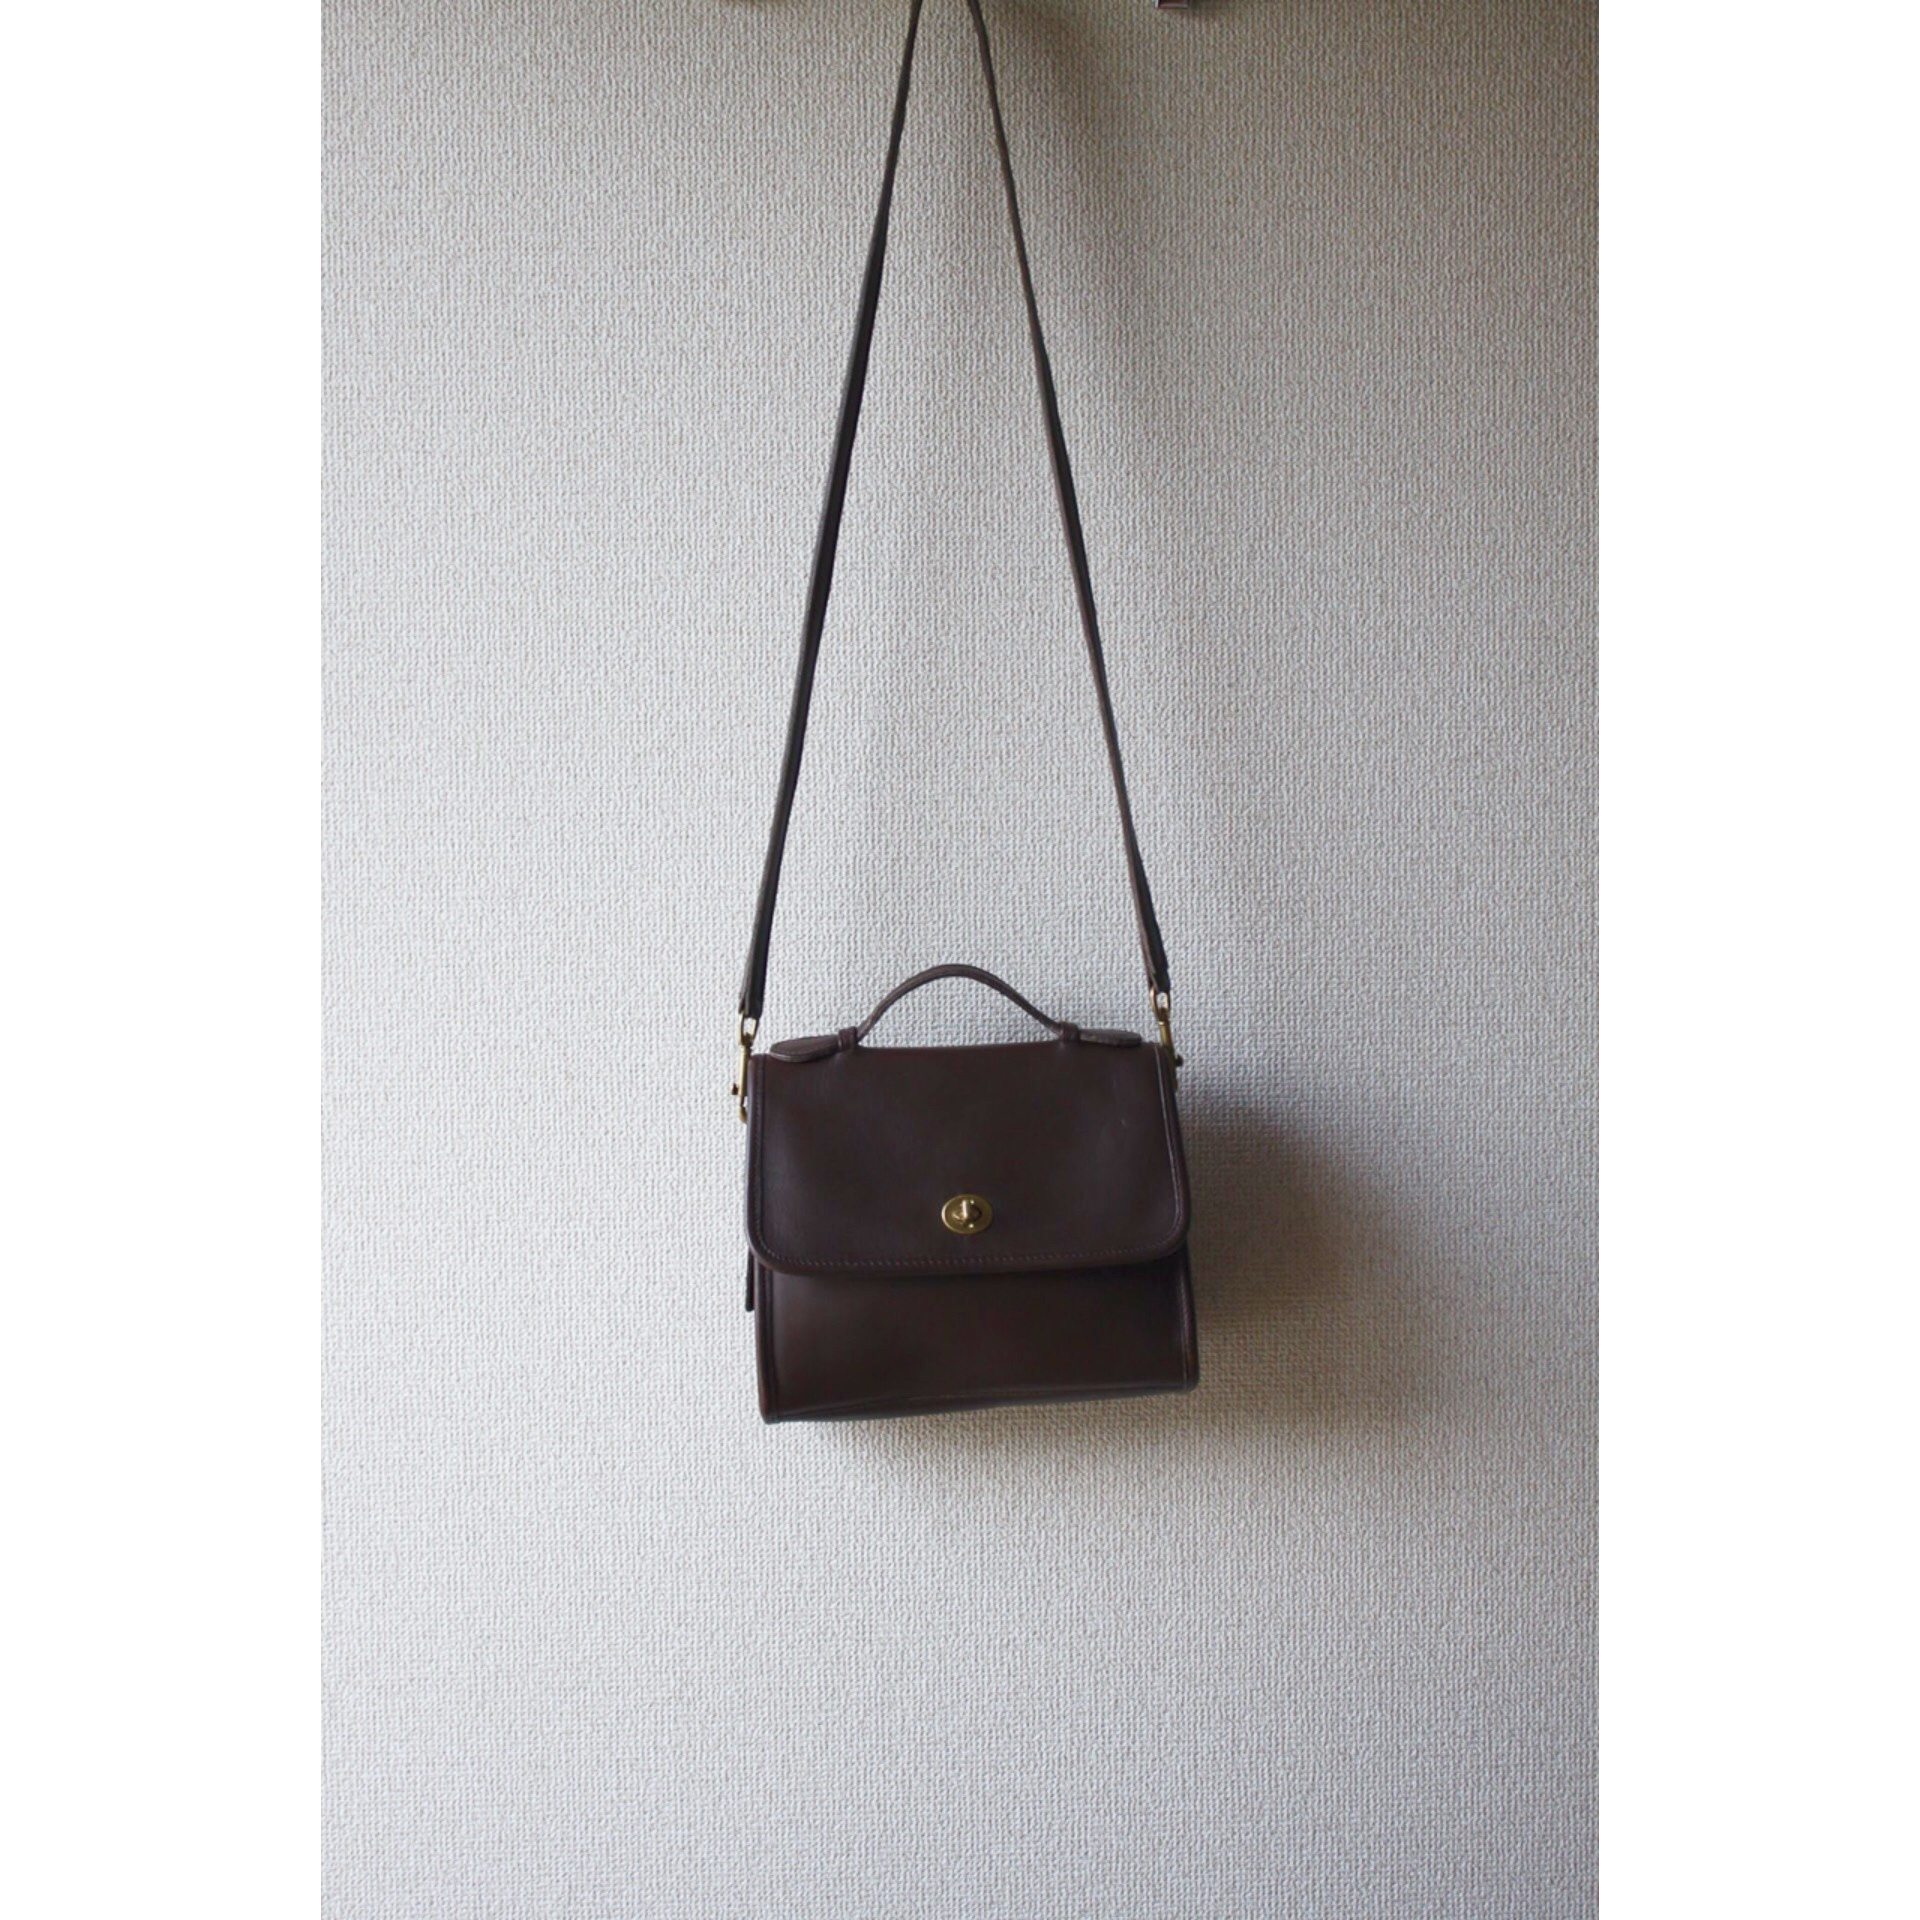 Old coach lether bag